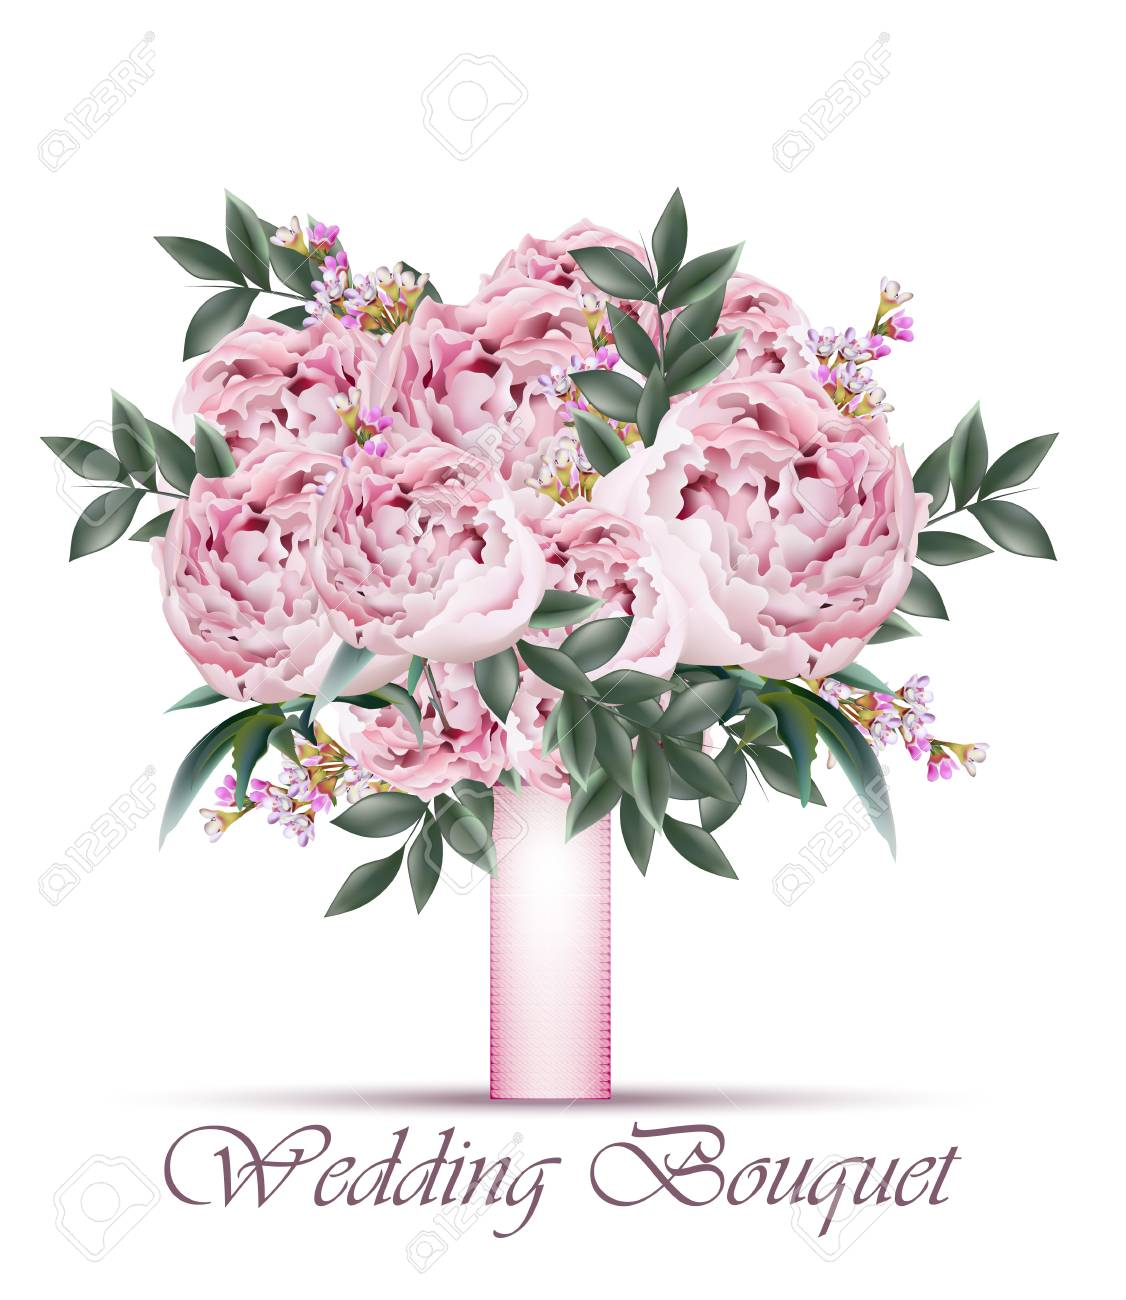 Peonies Wedding Bouquet Royalty Free Cliparts Vectors And Stock Illustration Image 100854078